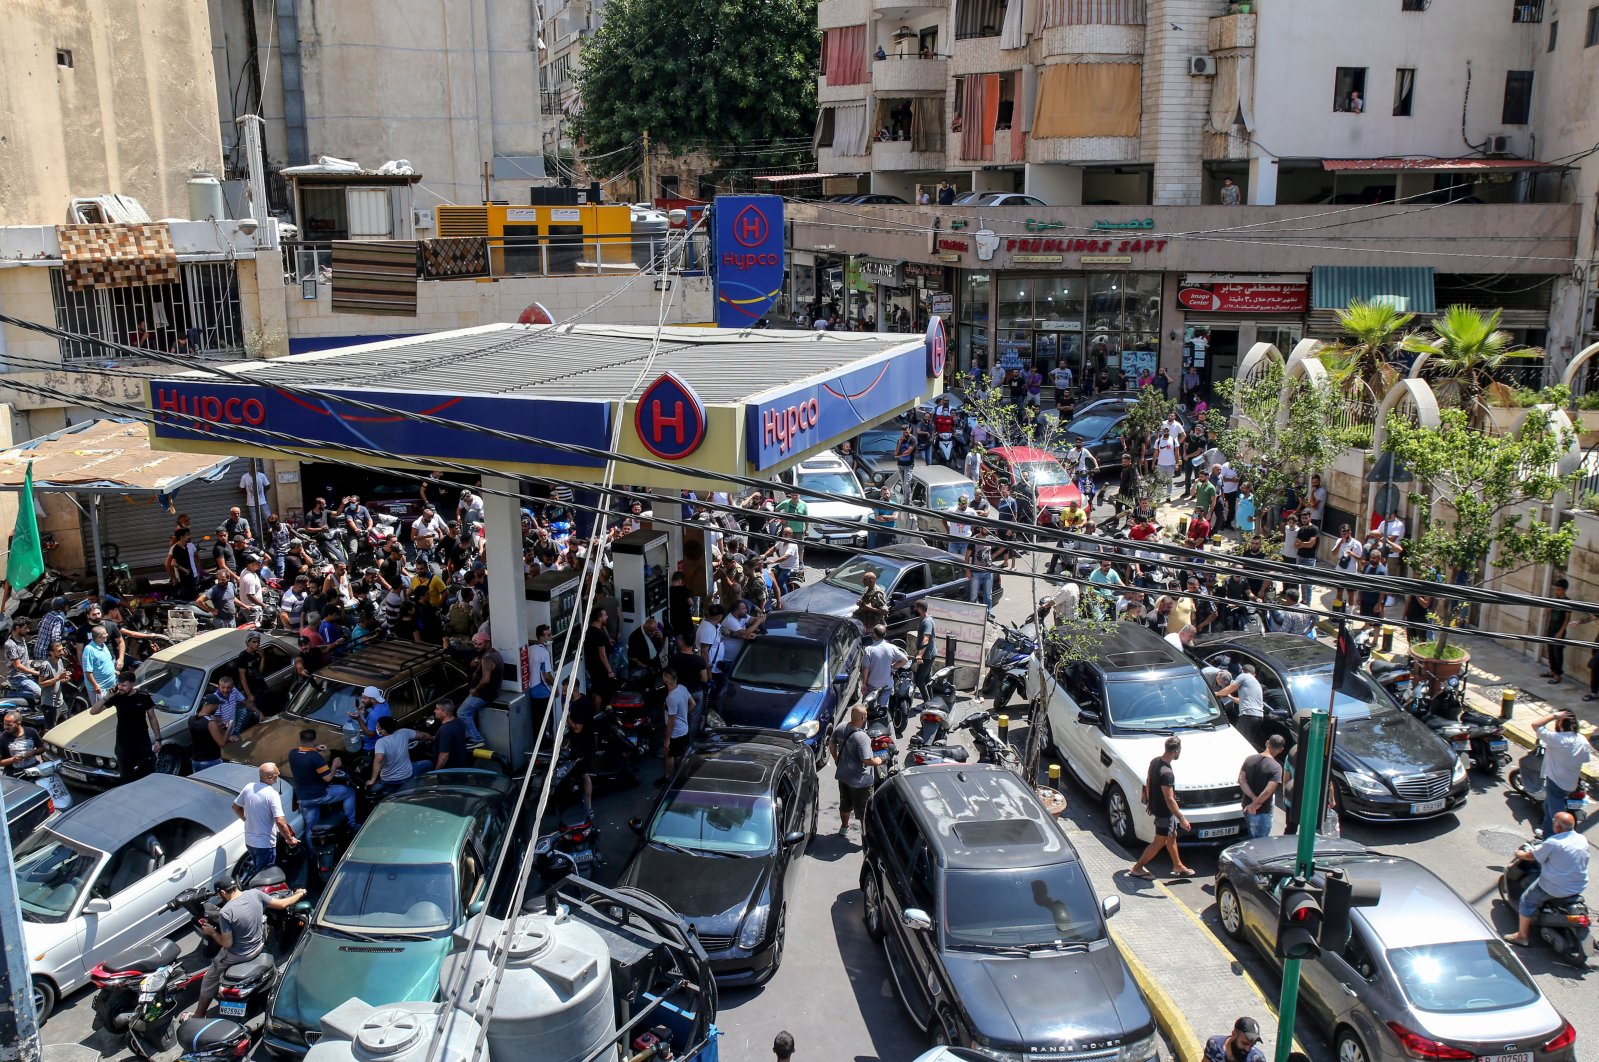 Motorcyclists and cars gather inside a gasoline station after security forces raided and ordered the station owner to distribute gasoline to citizens, in Beirut, Lebanon, Aug. 14, 2021. (EPA Photo)